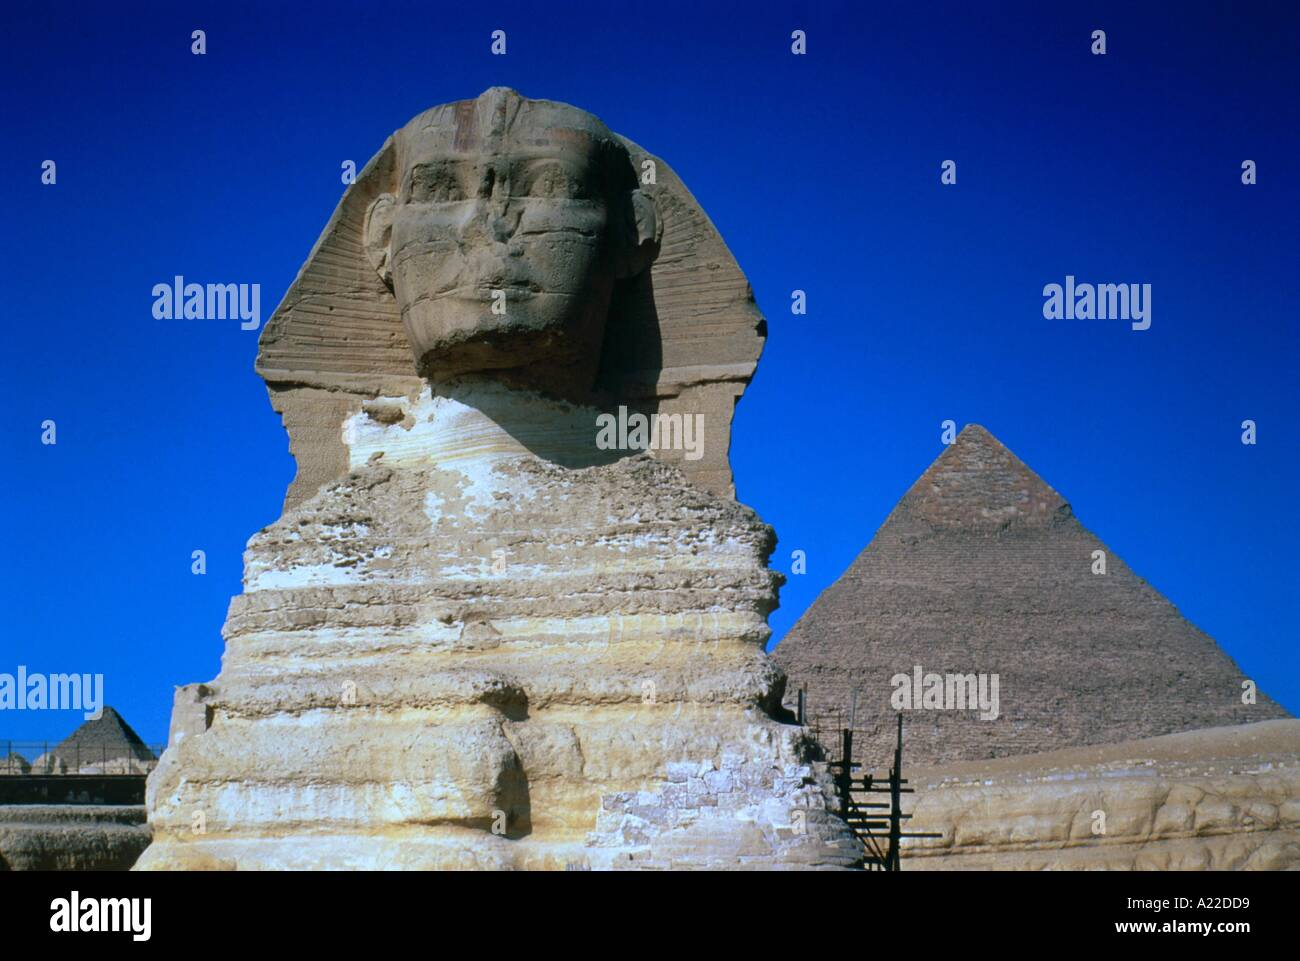 The Sphinx and one of the pyramids at Giza Local Caption Cairo - Stock Image